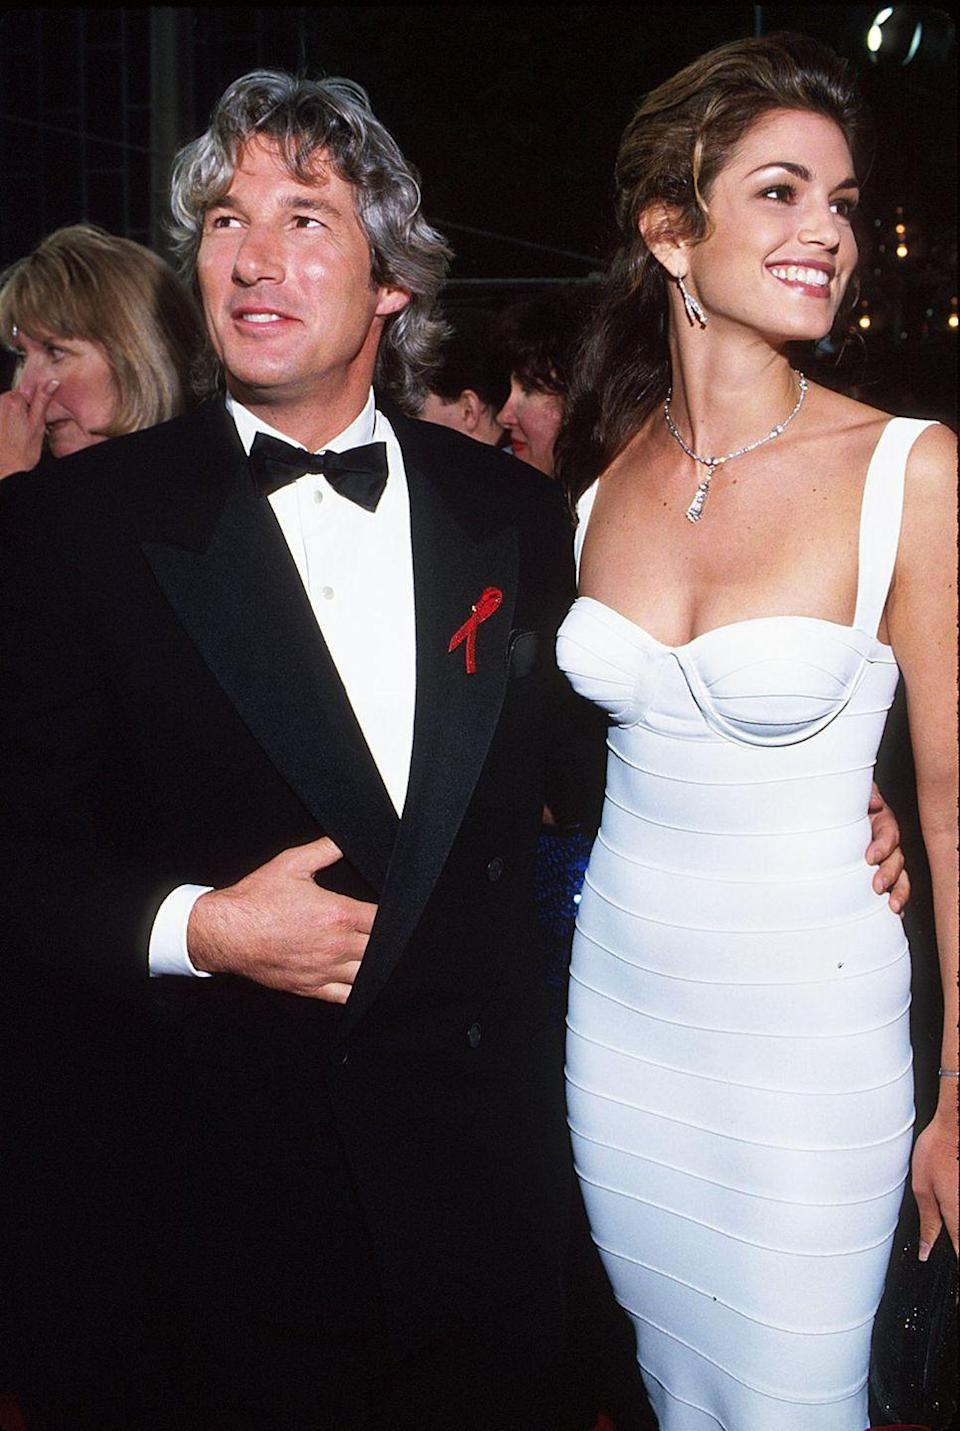 <p>The model's skin-tight bandage dress accentuated her figure as she graced the red carpet with then-husband Richard Gere, who was a presenter that evening. </p>